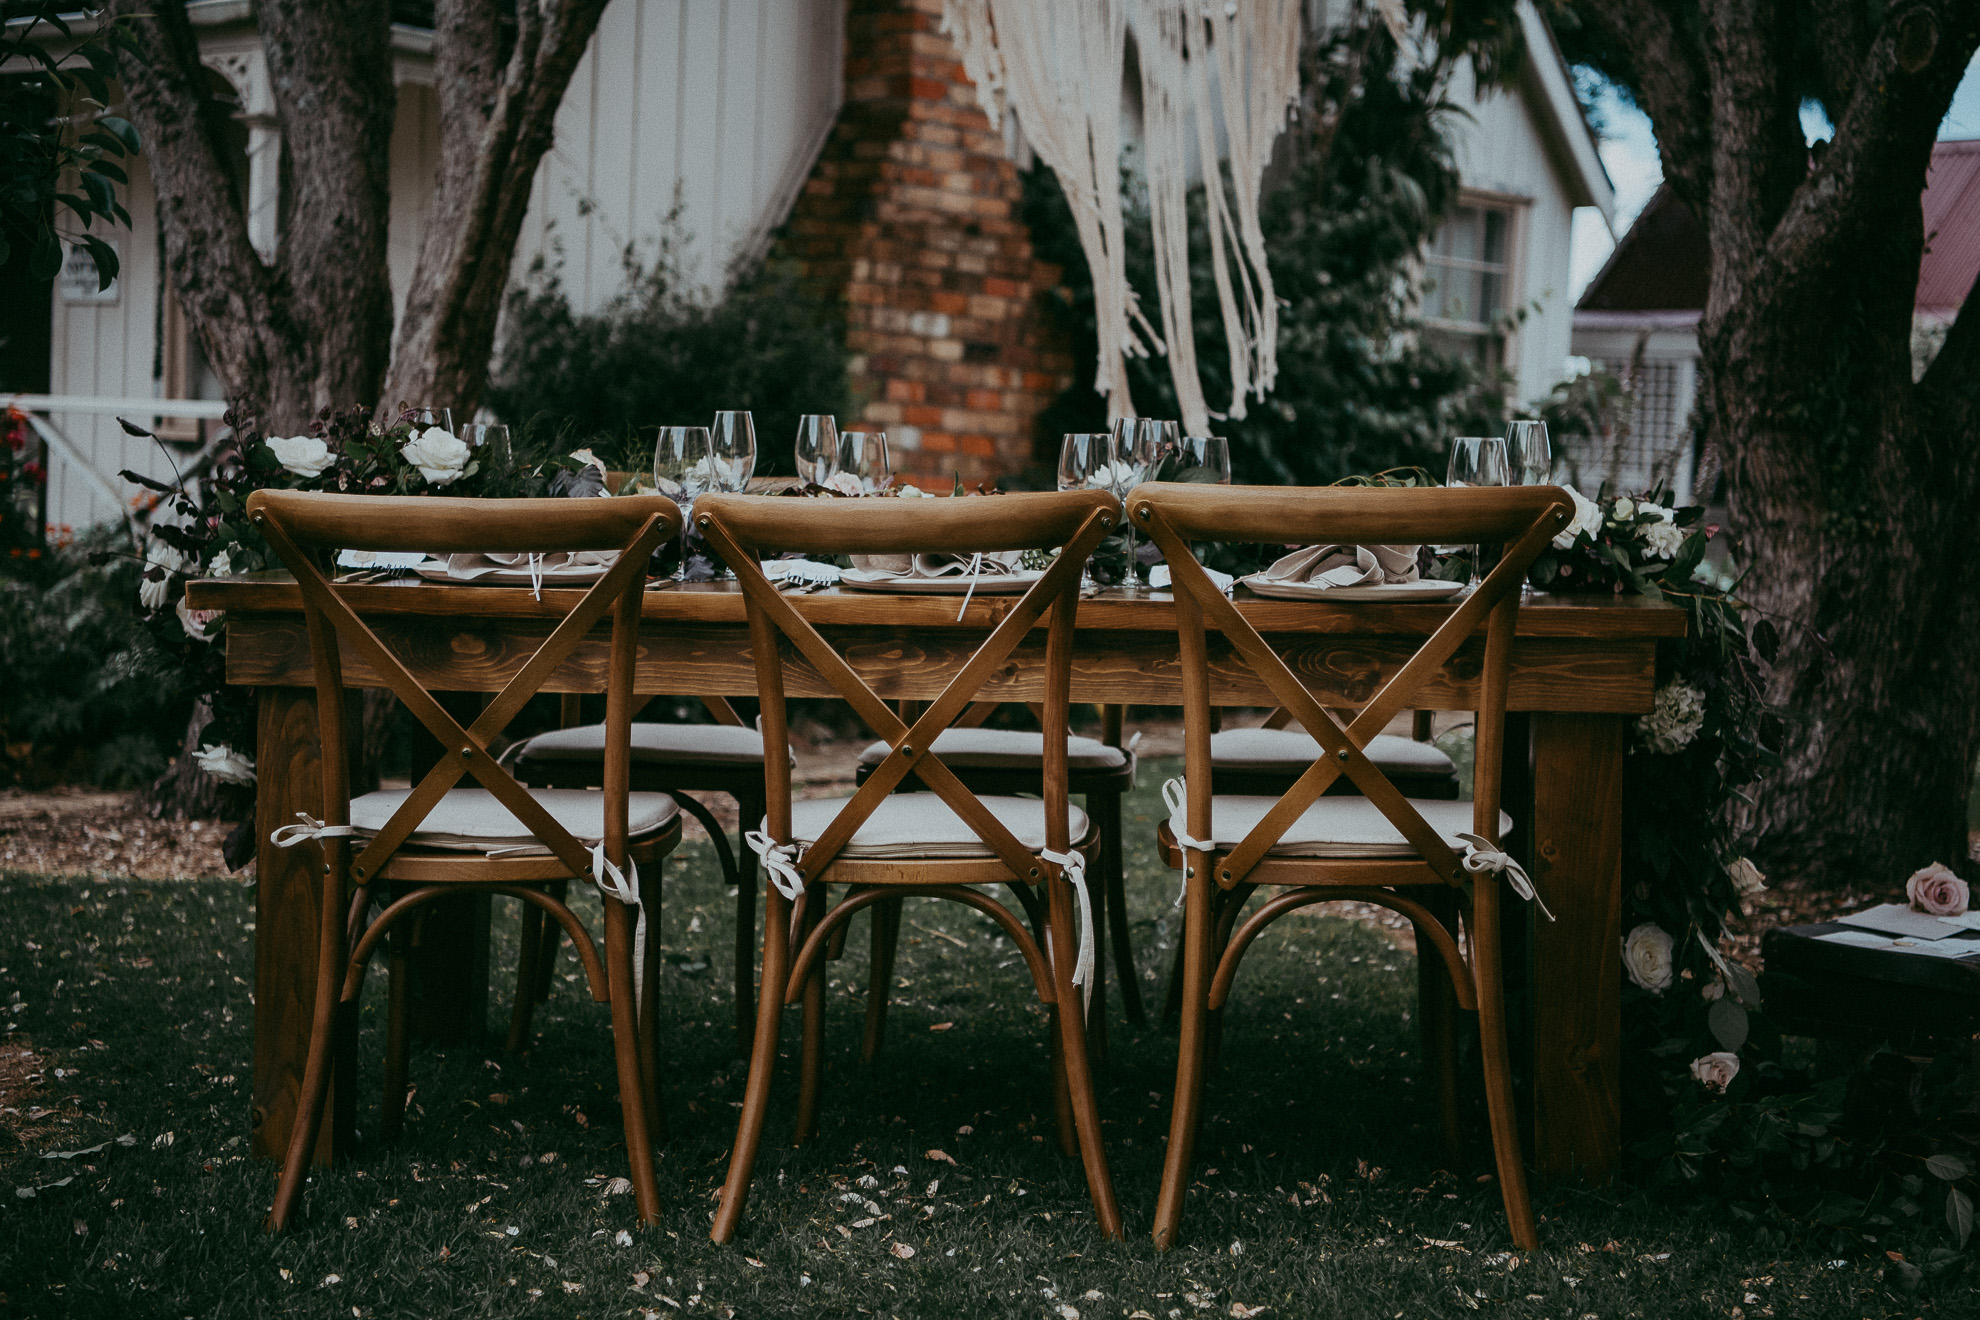 styled-shoot-by-levien-53.JPG